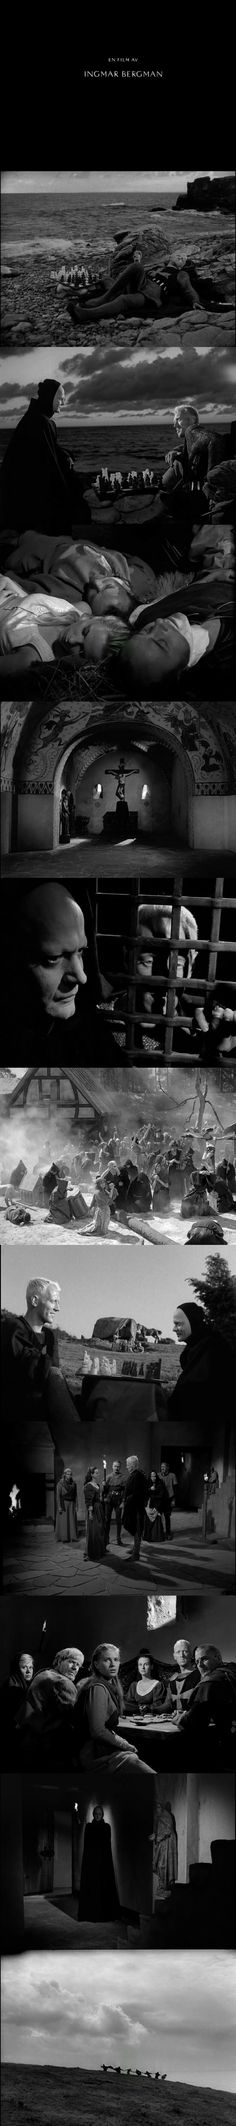 Thr Seventh Seal (1957) Directed by Ingmar Bergman.